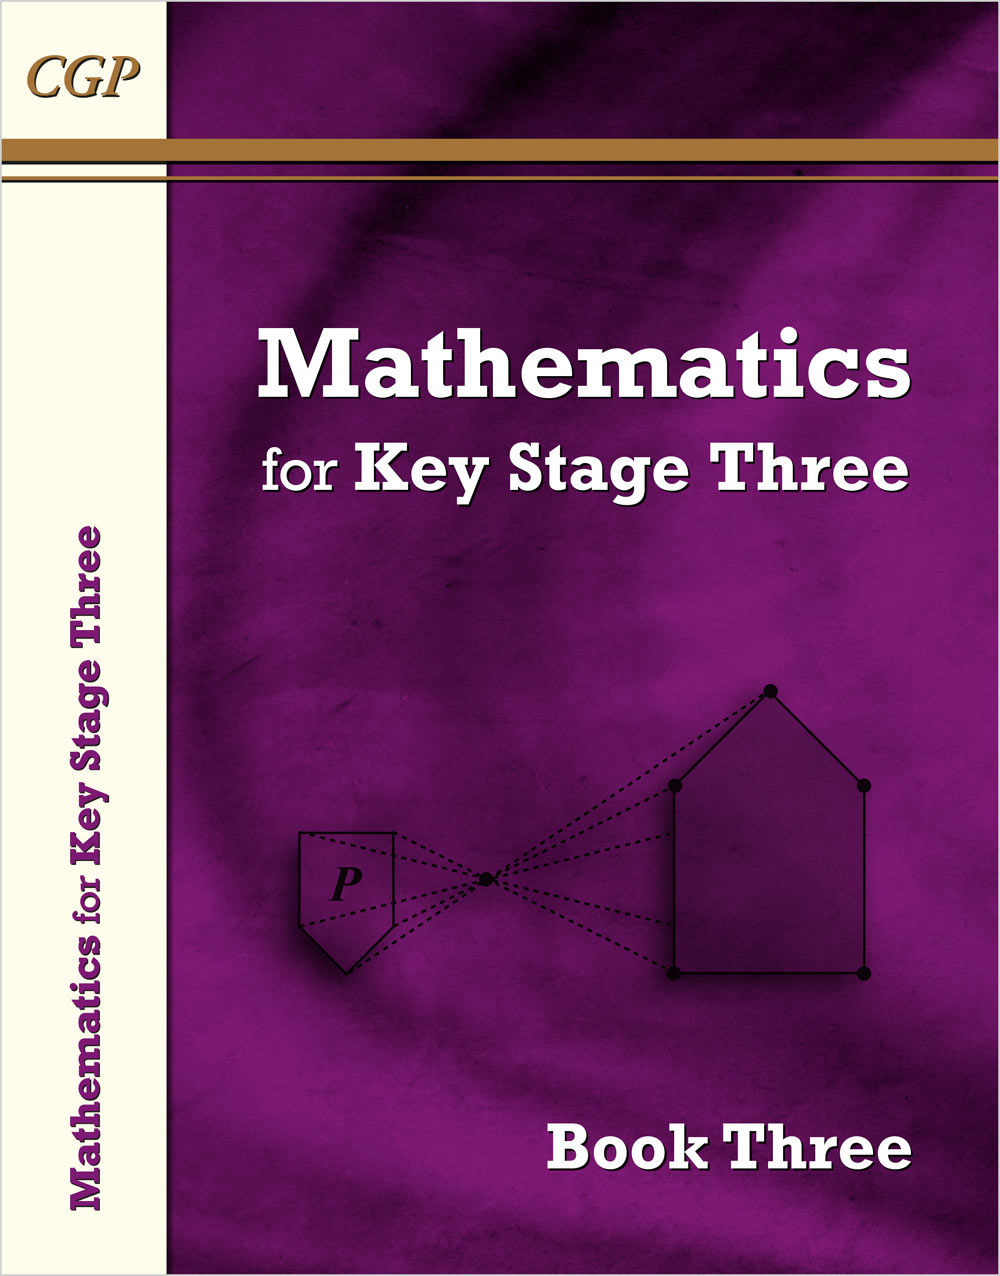 KS3 Maths Textbook 3